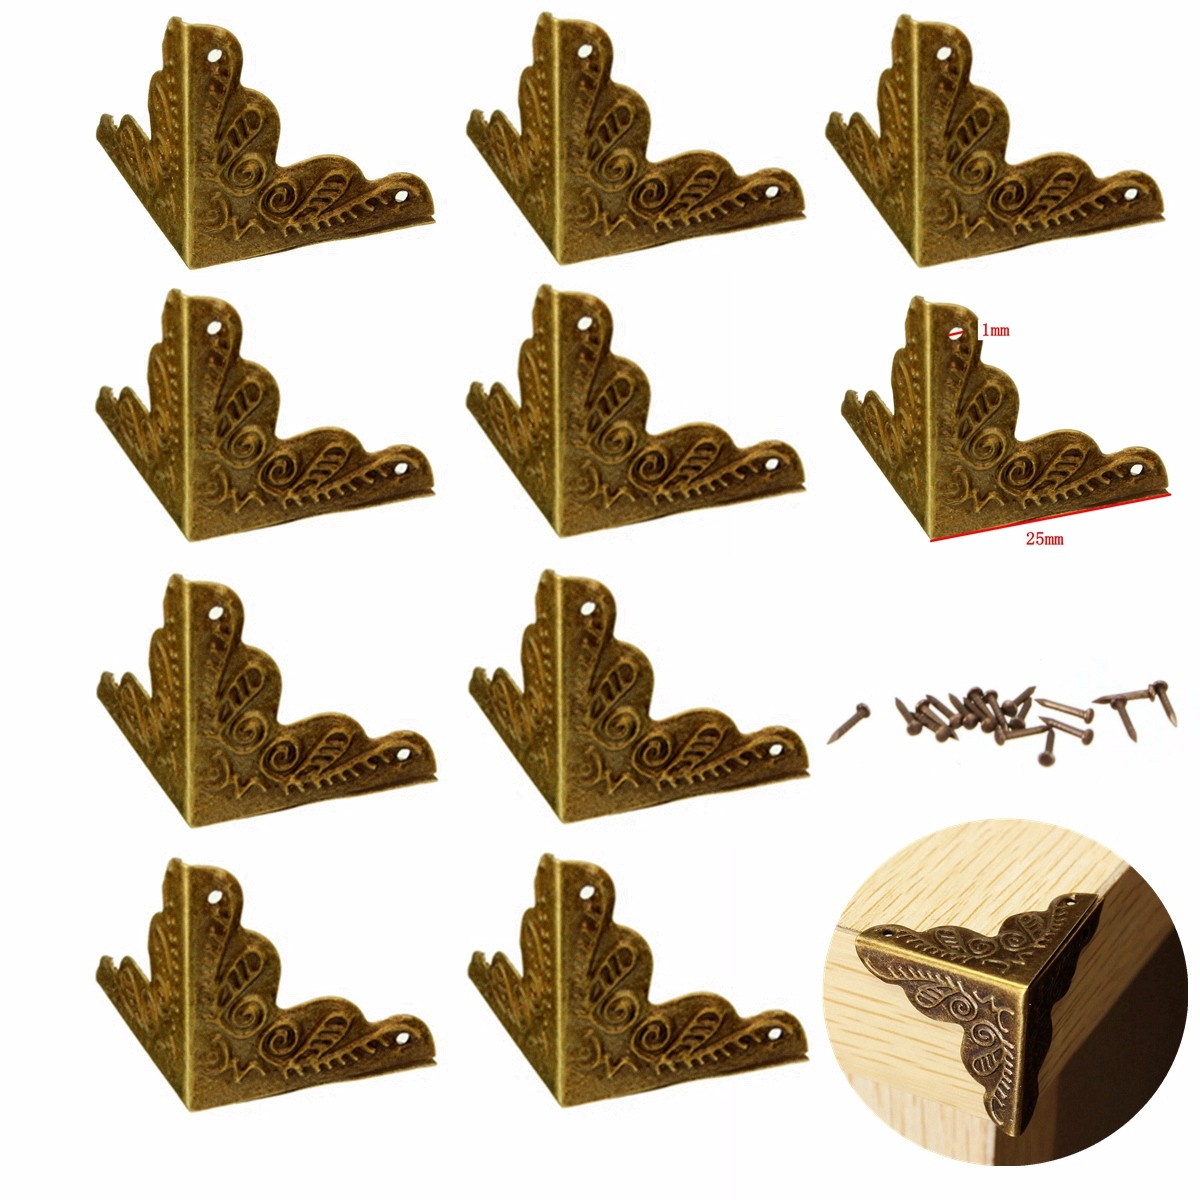 MTGATHER 10Pcs Antique Jewelry Box Corner Foot Wooden Case Corner Protector Tone Flower Pattern Carved Metal Crafts Bronze mdlg vintage alphabet letter t crown wedding invitations gift cards wax seal stamp stationary sealing wax stamp wood handel set